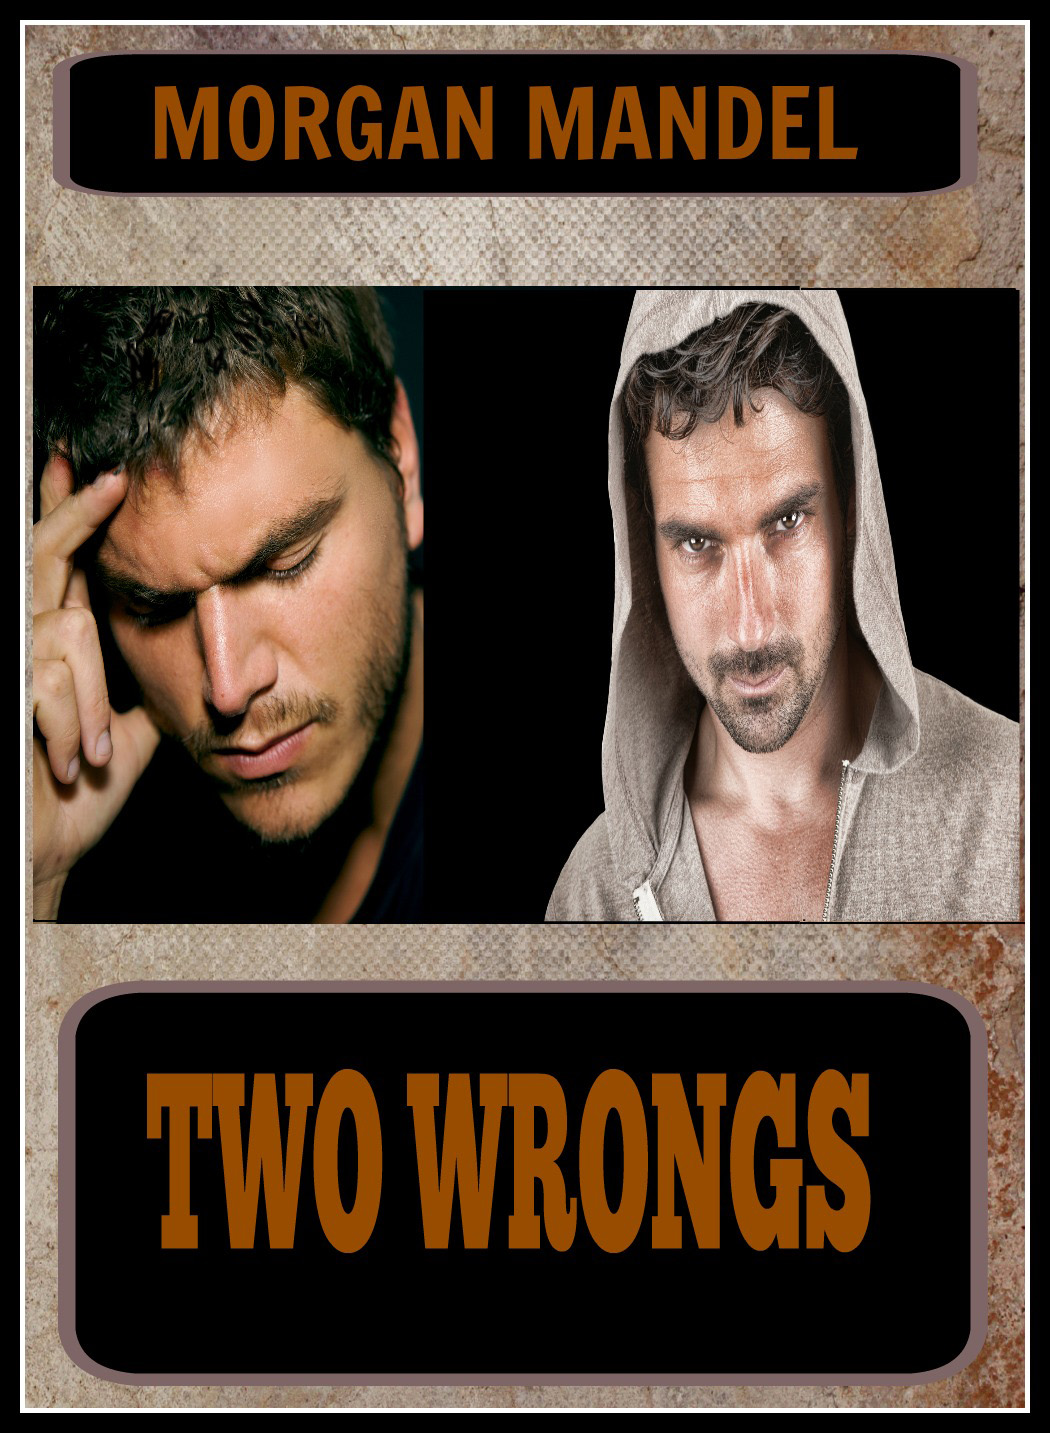 TWO WRONGS BY MORGAN MANDEL